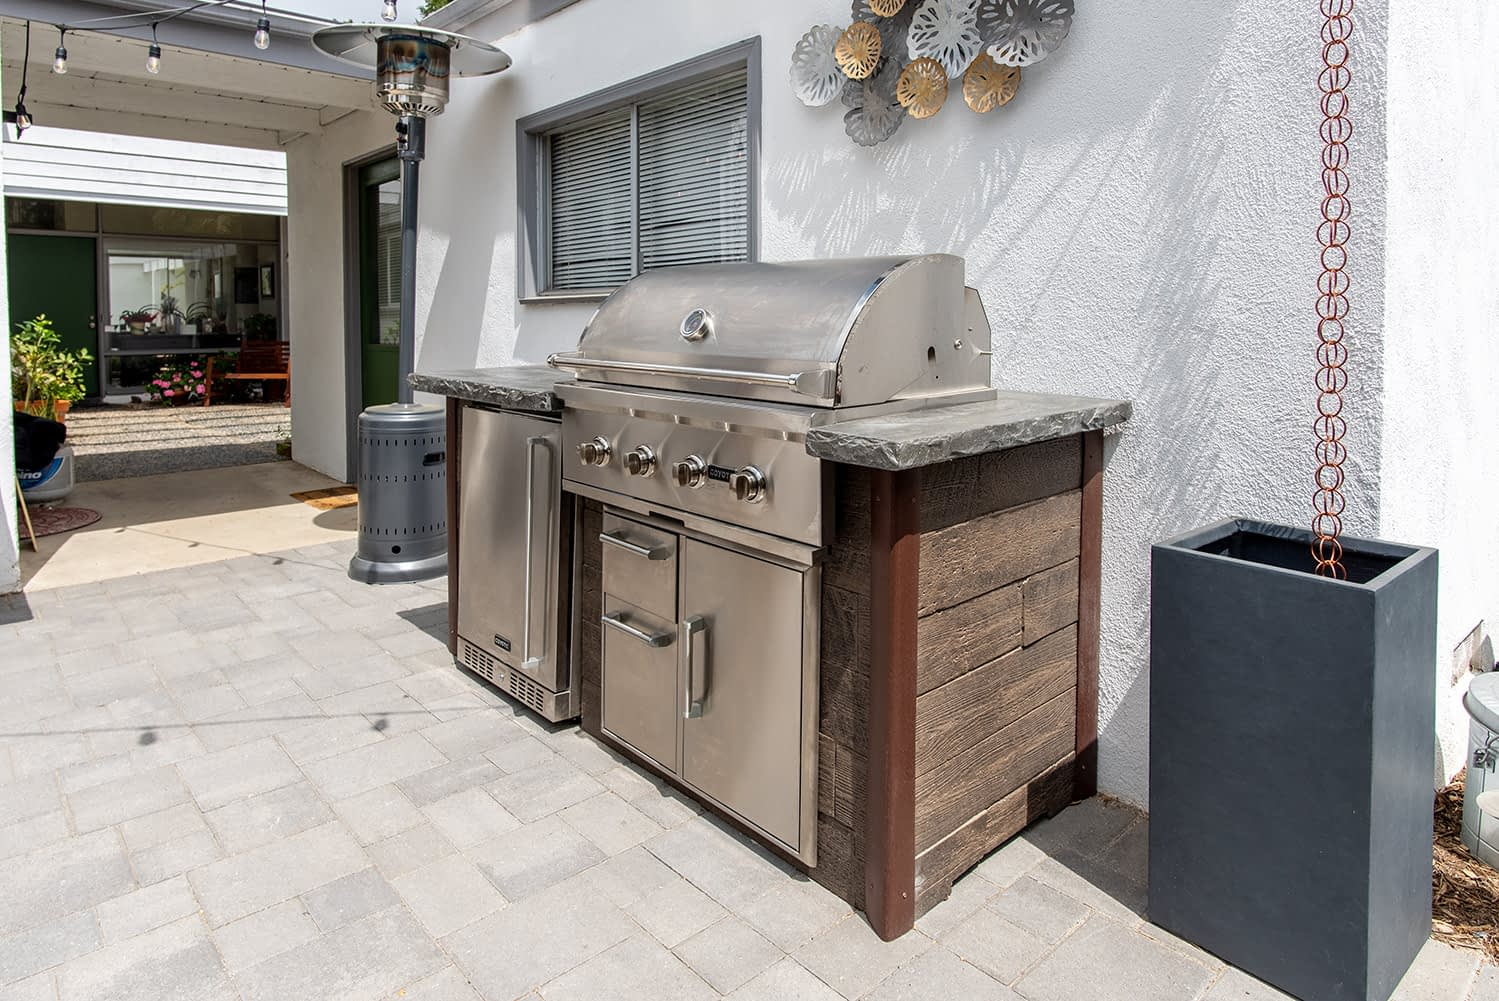 Small Outdoor Kitchen Setup on Patio with Built in Grill and Sink (4)